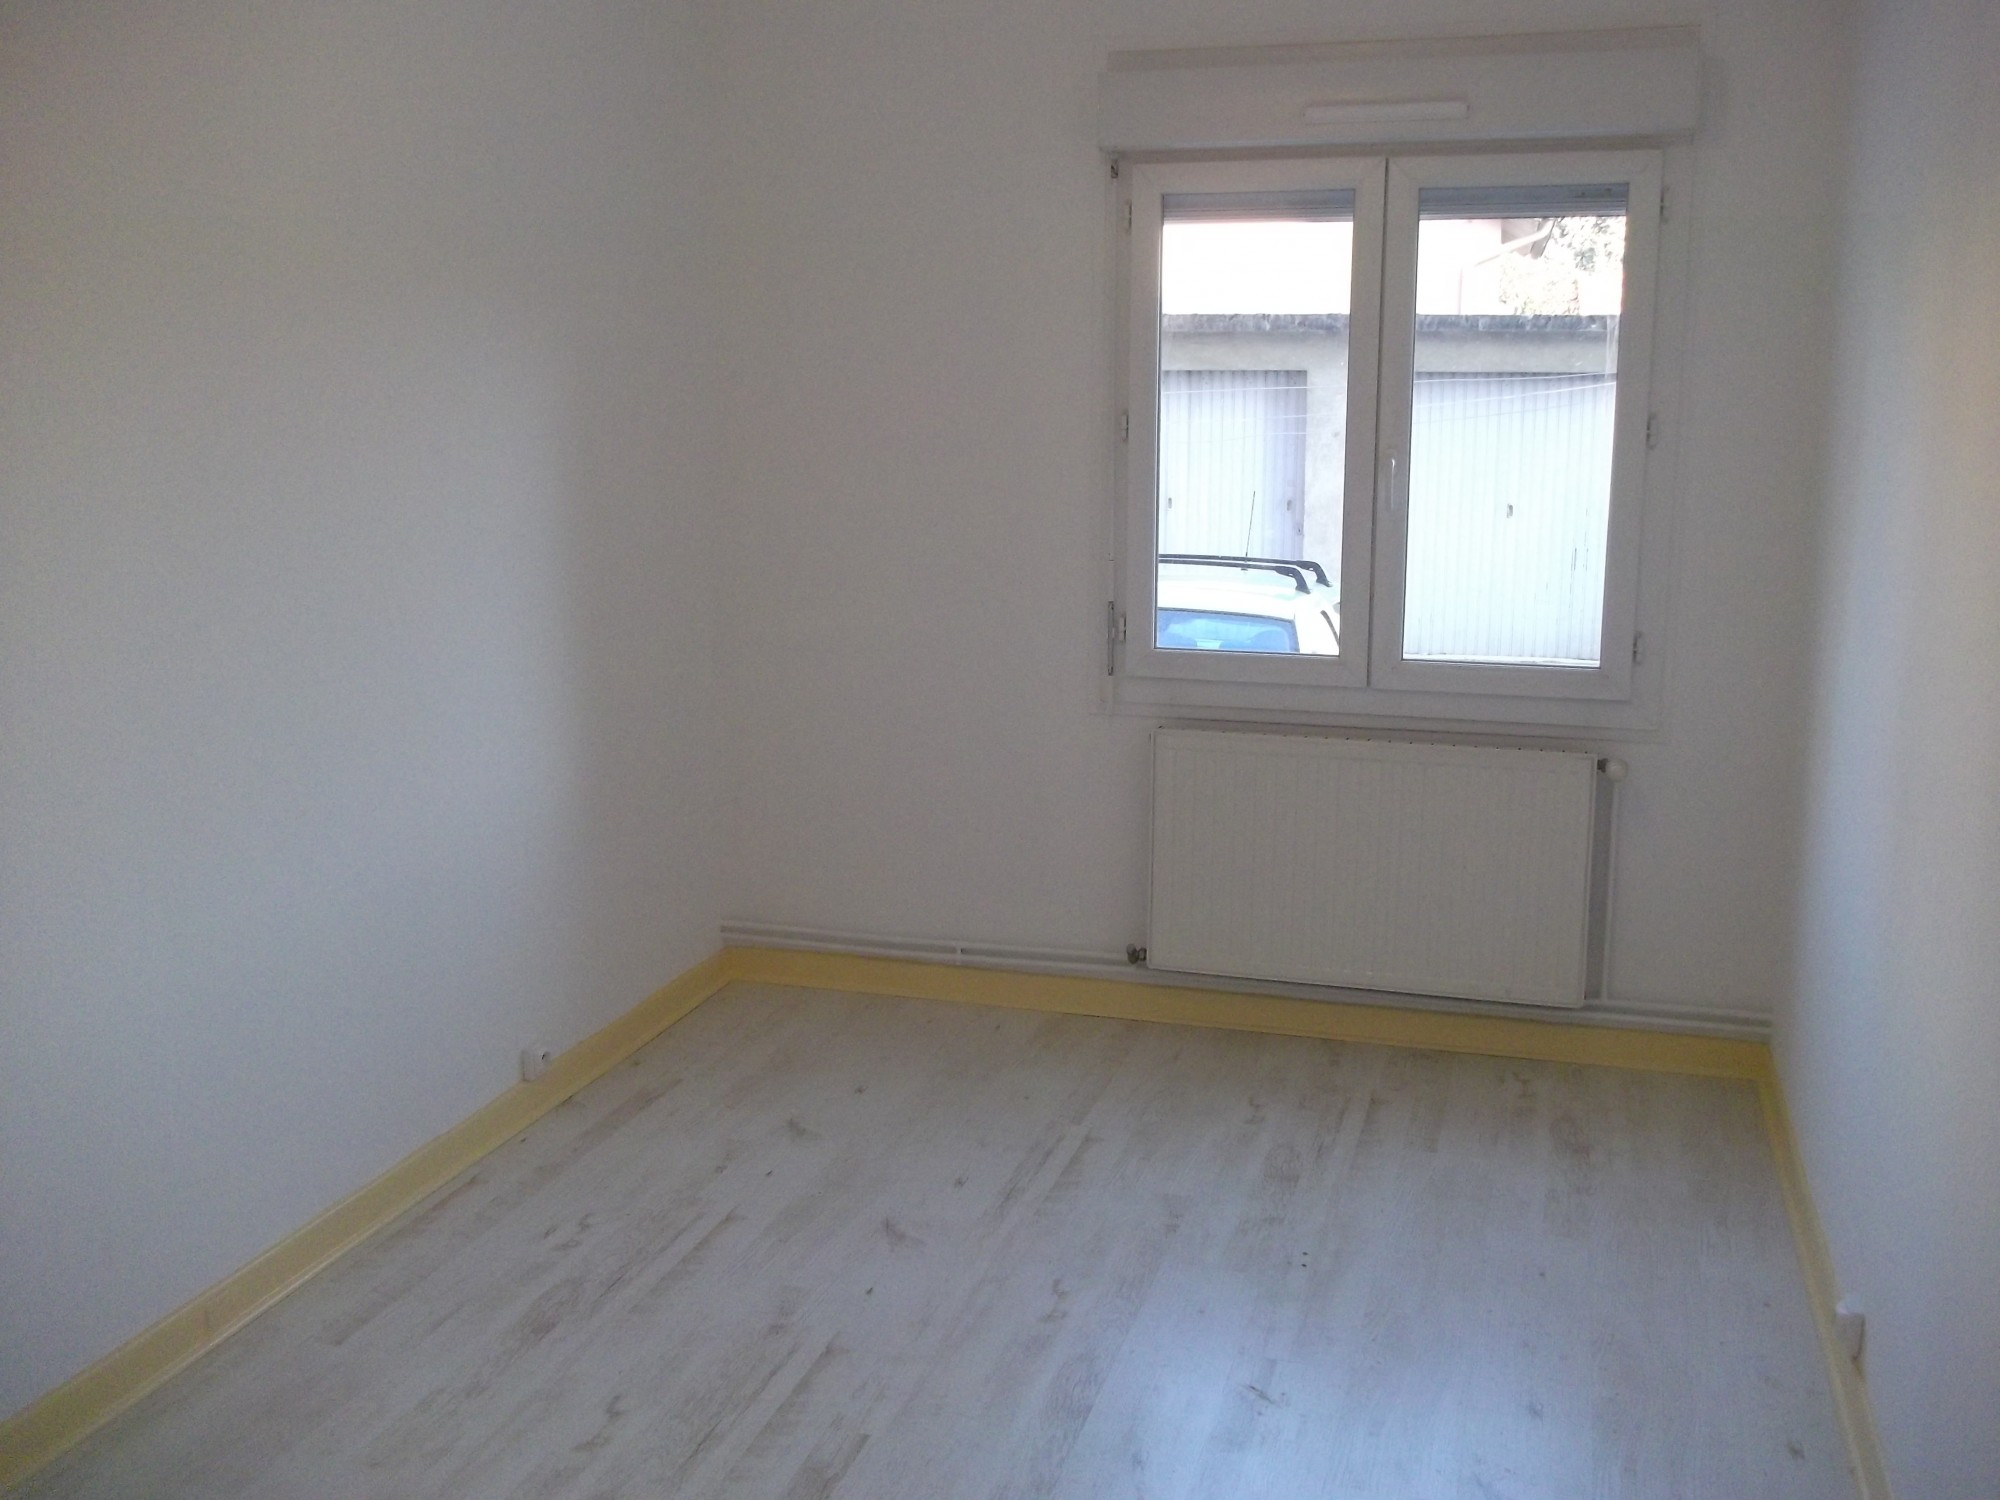 location valence proche caserne Spahis